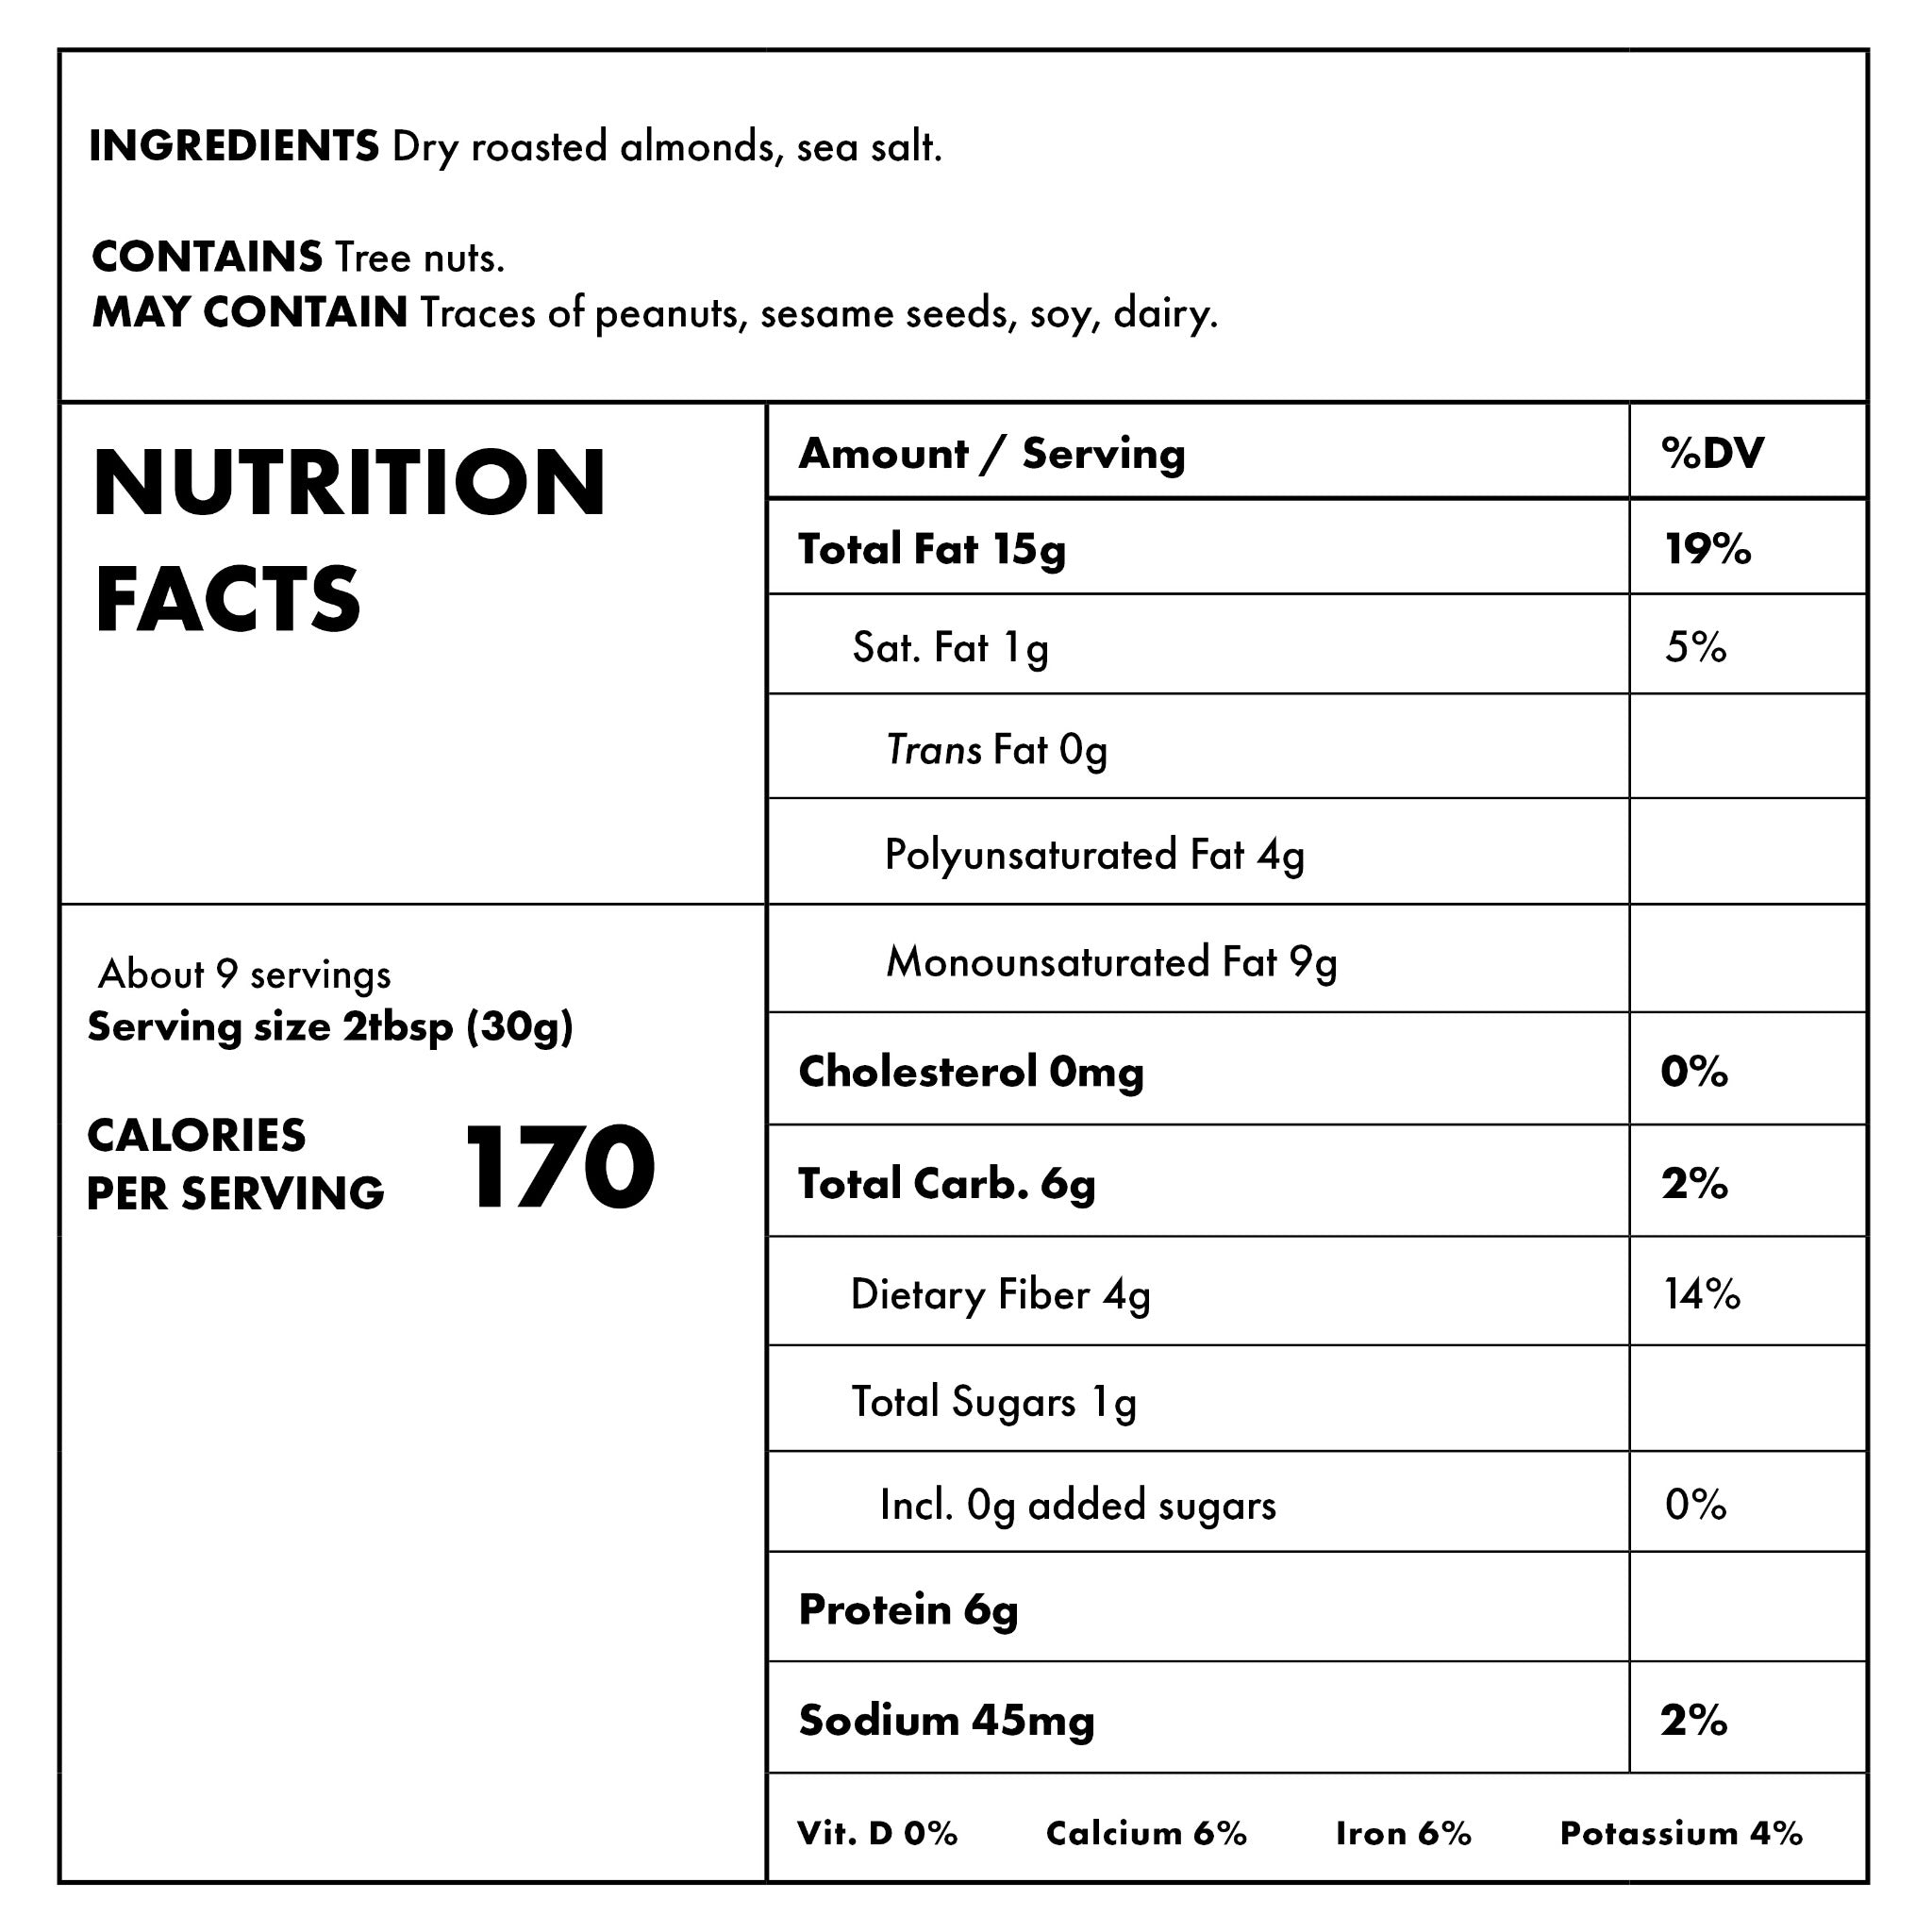 Smooth Almond Nutritional Information